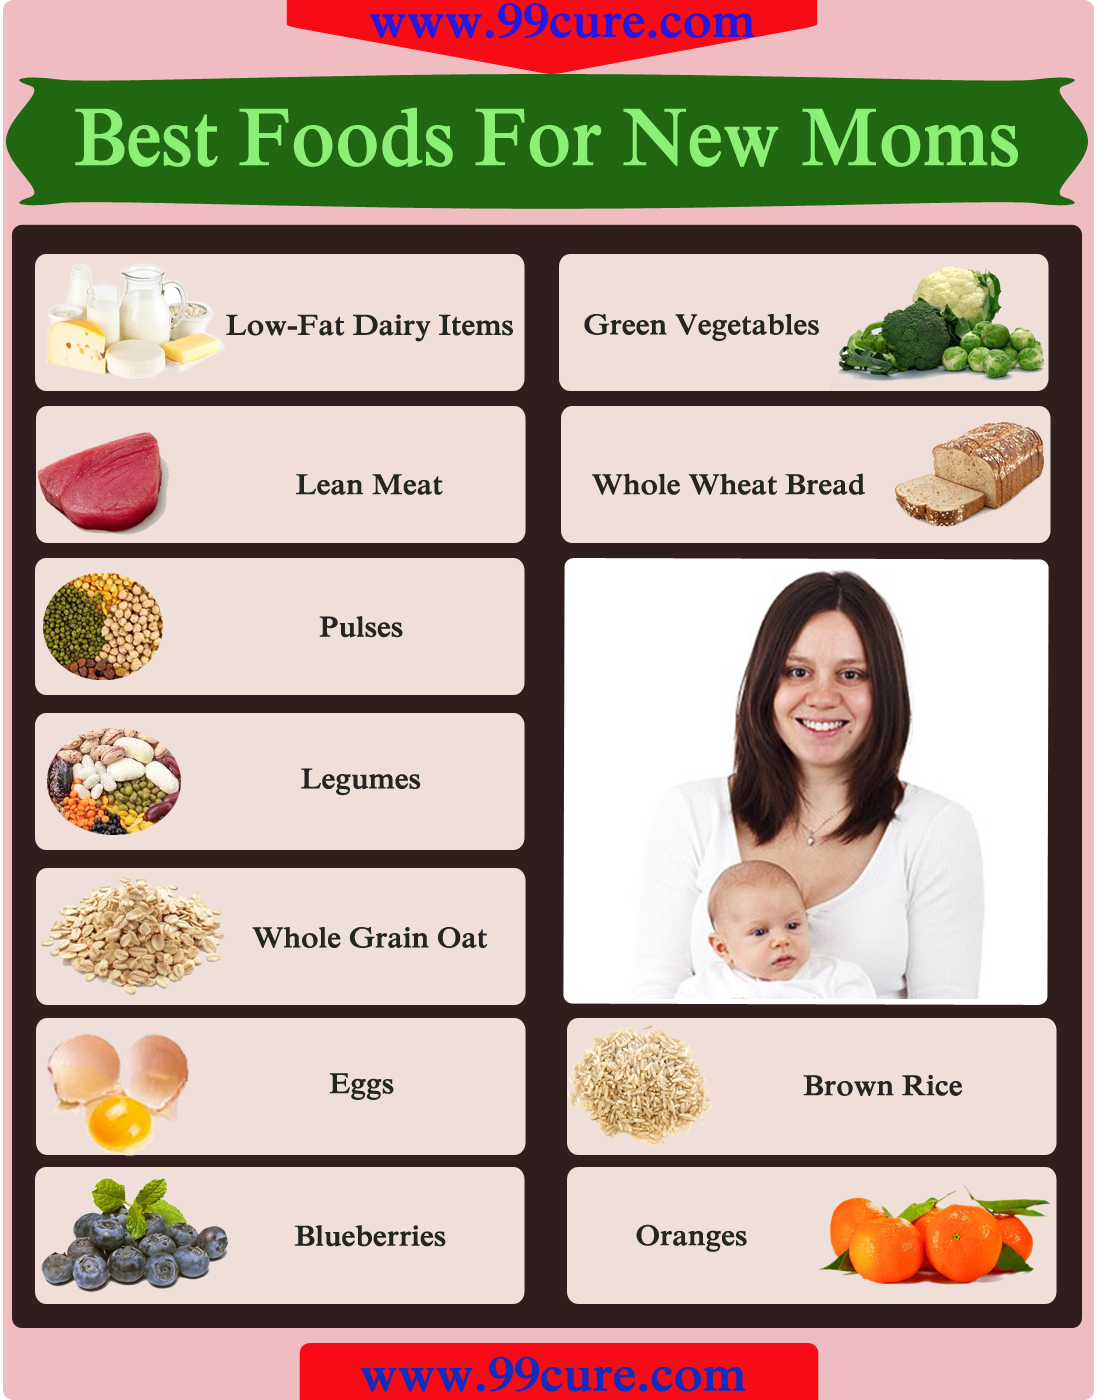 Best Foods For New Moms